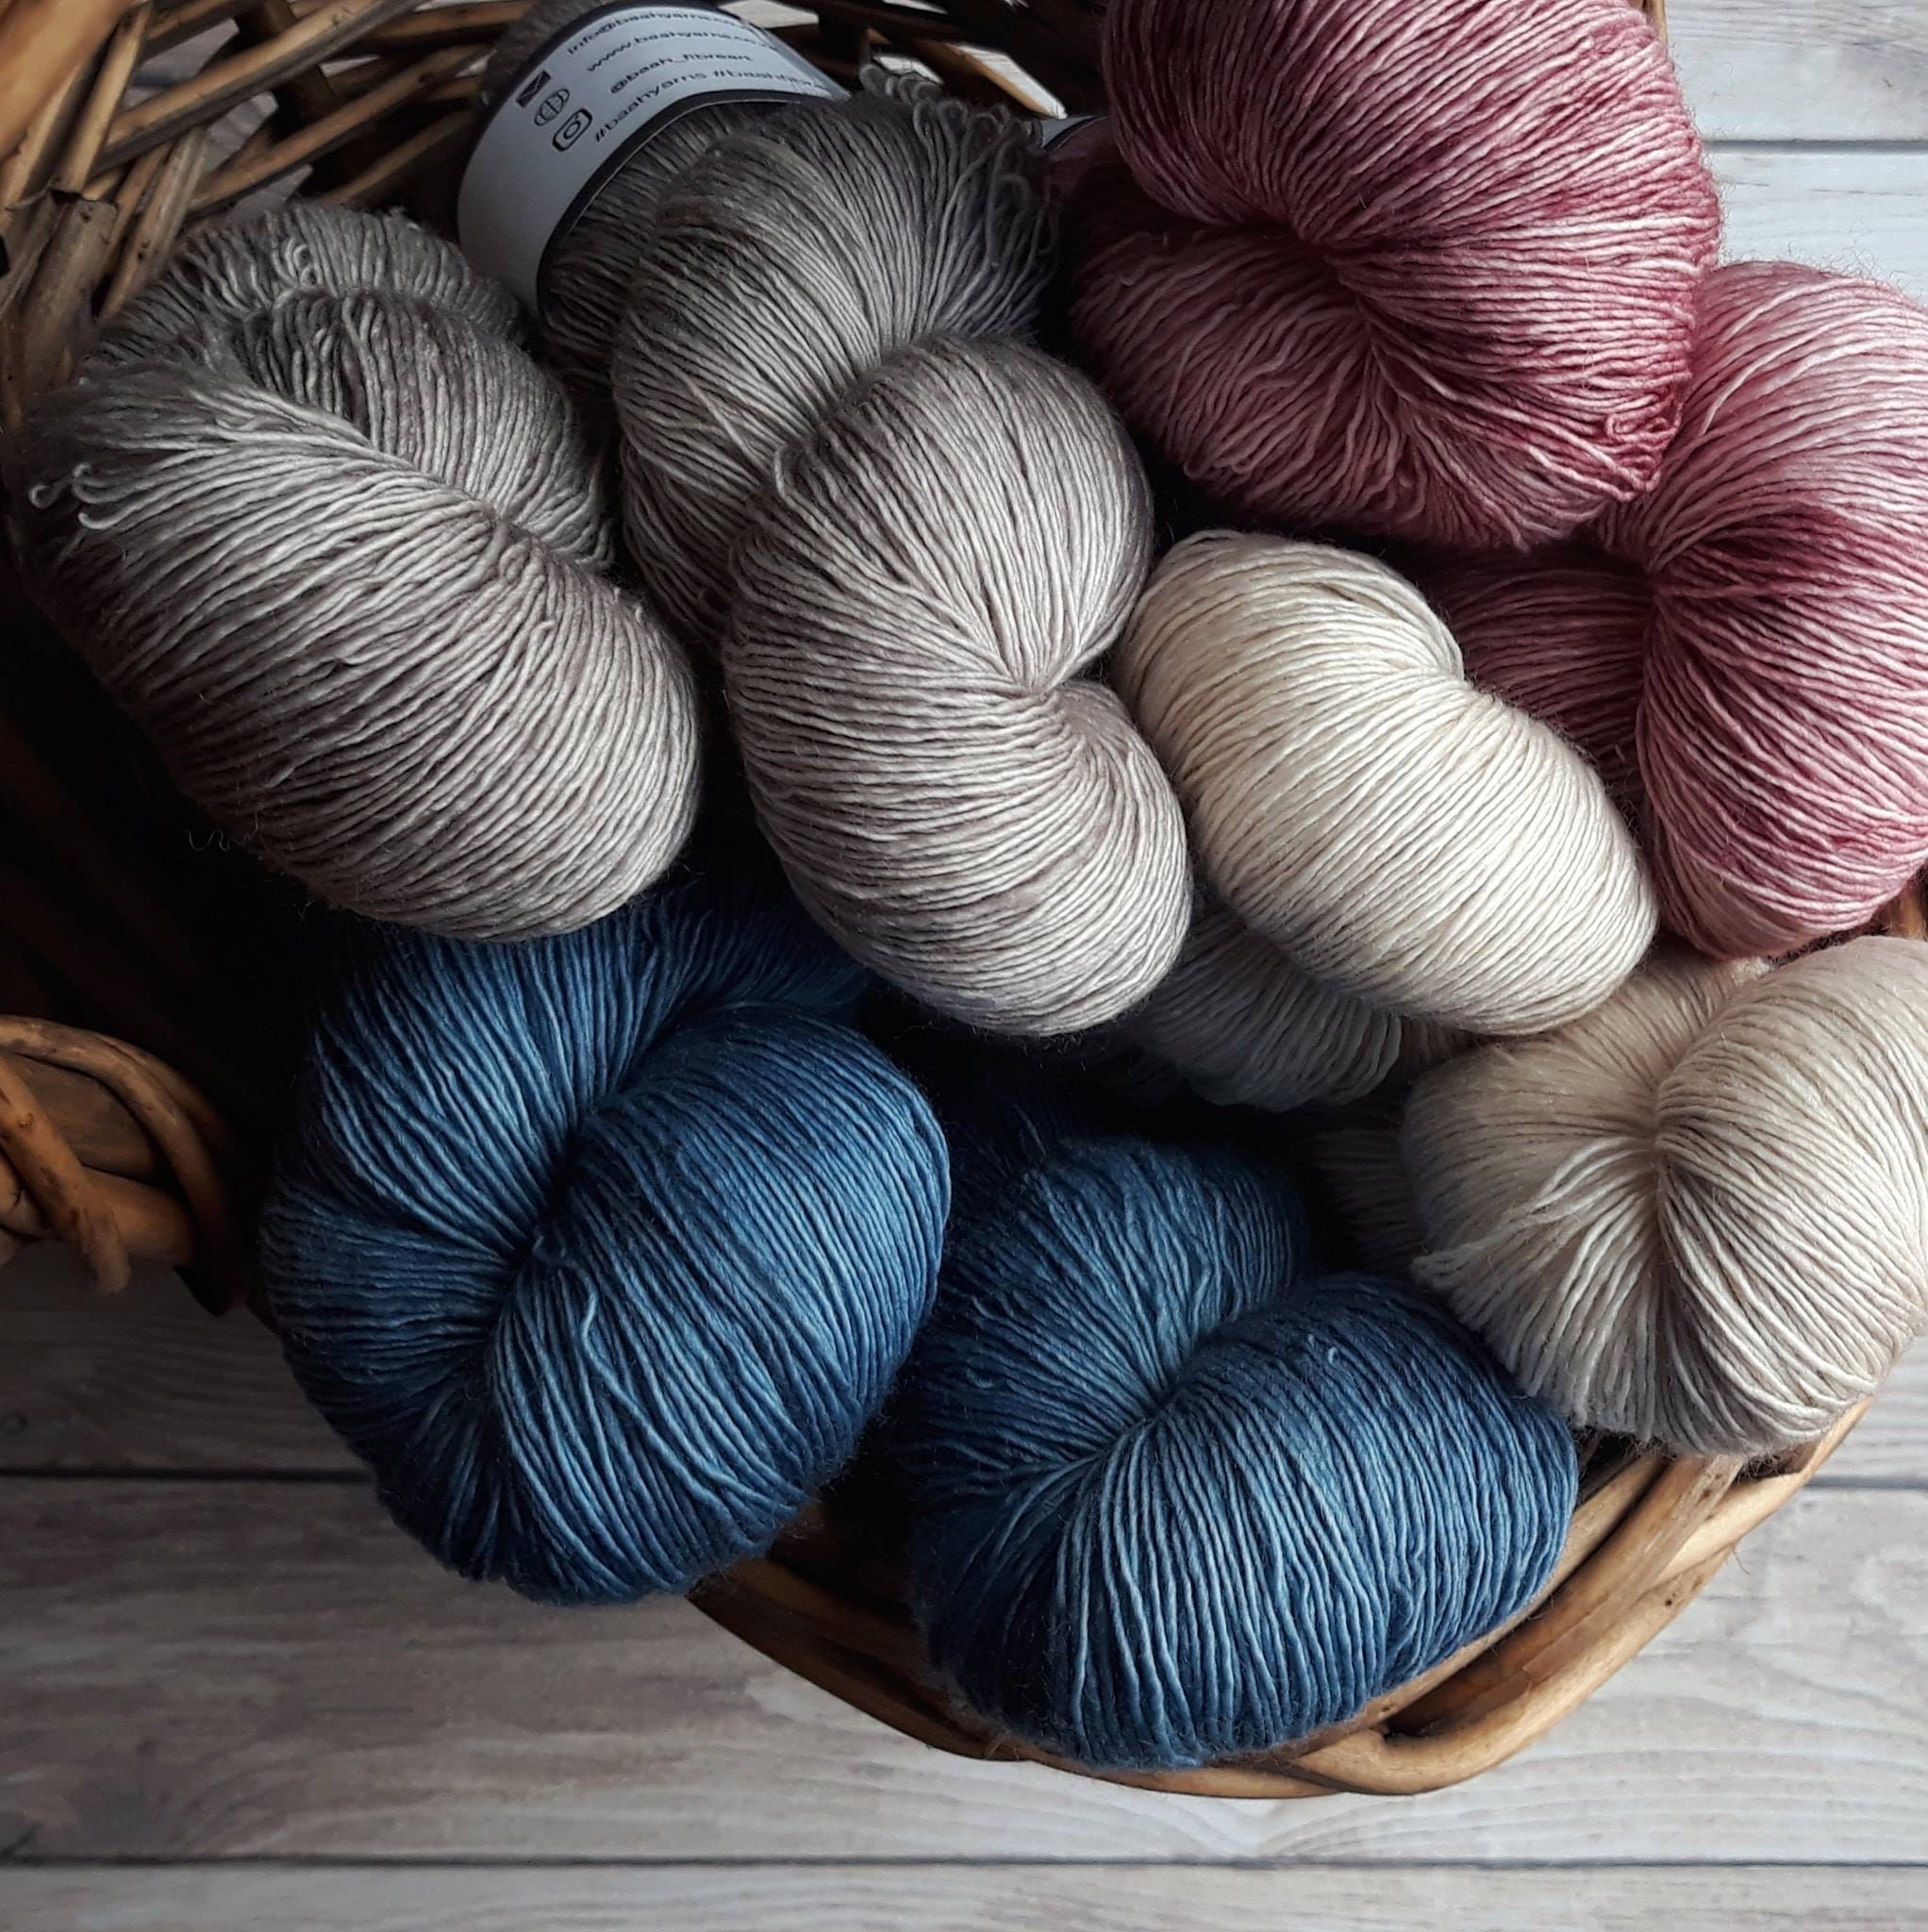 Skeins of yarn in shades of white, gray, red and blue in a brown basket